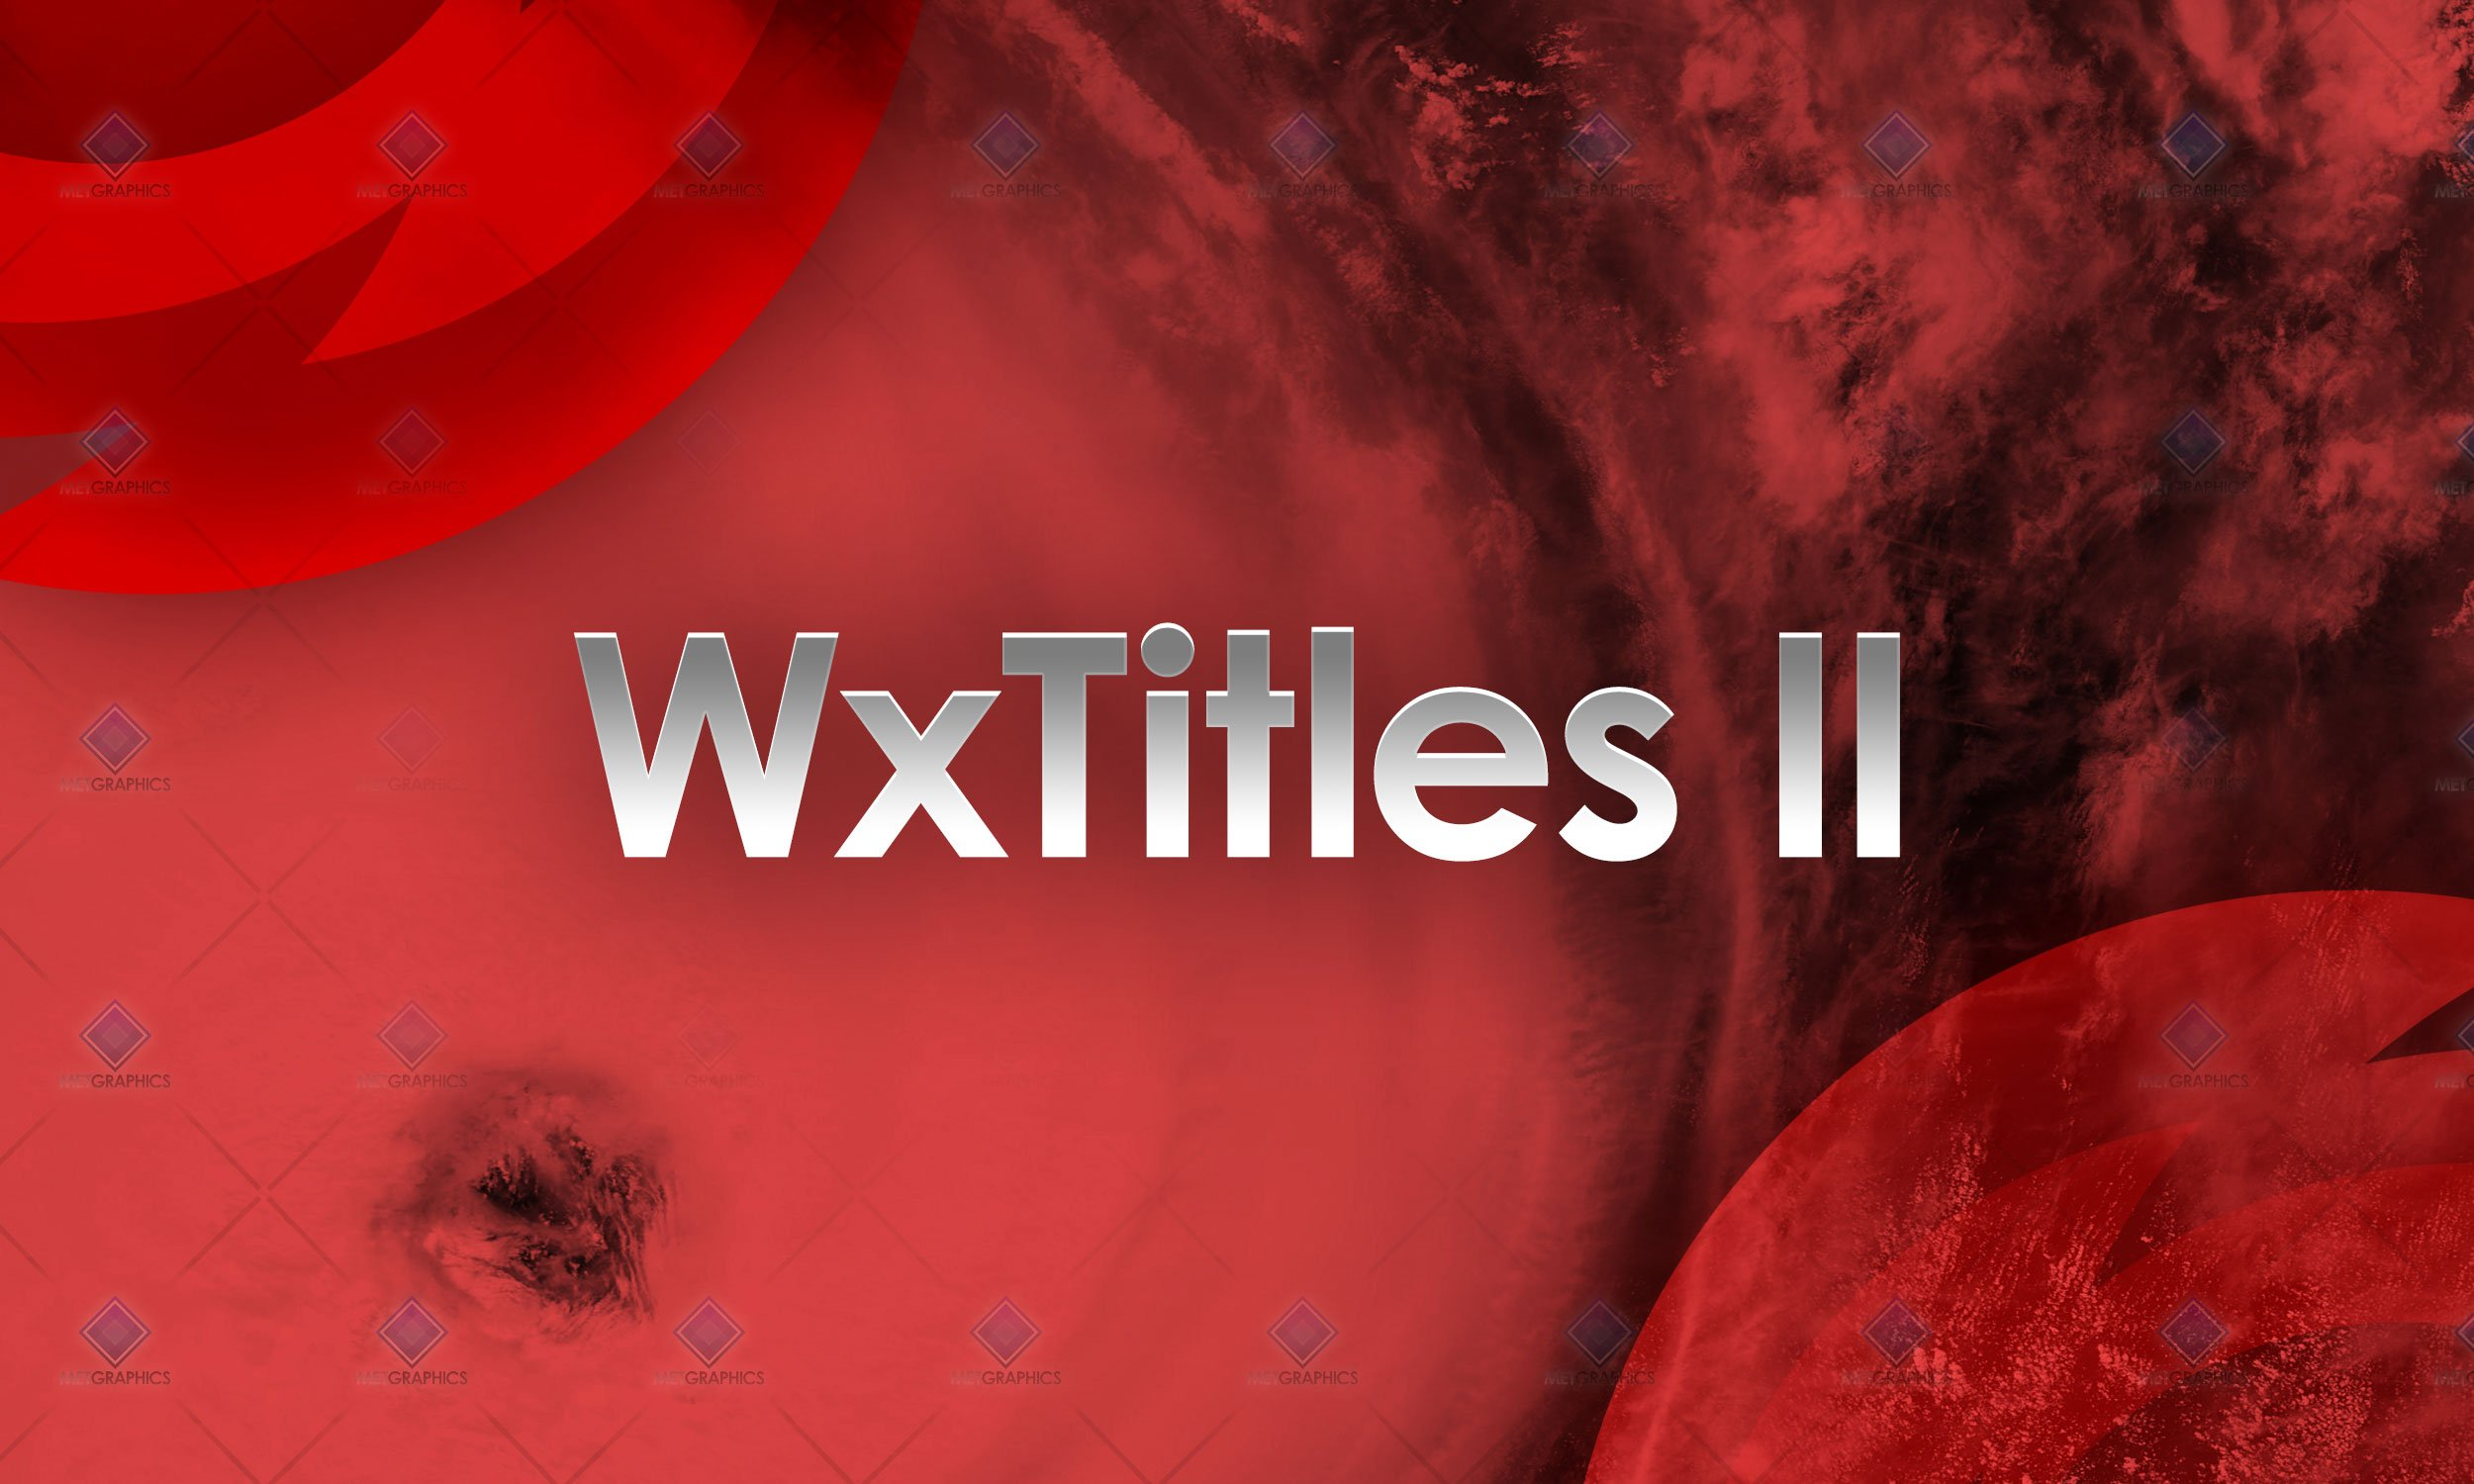 WxTitles II Cover IV